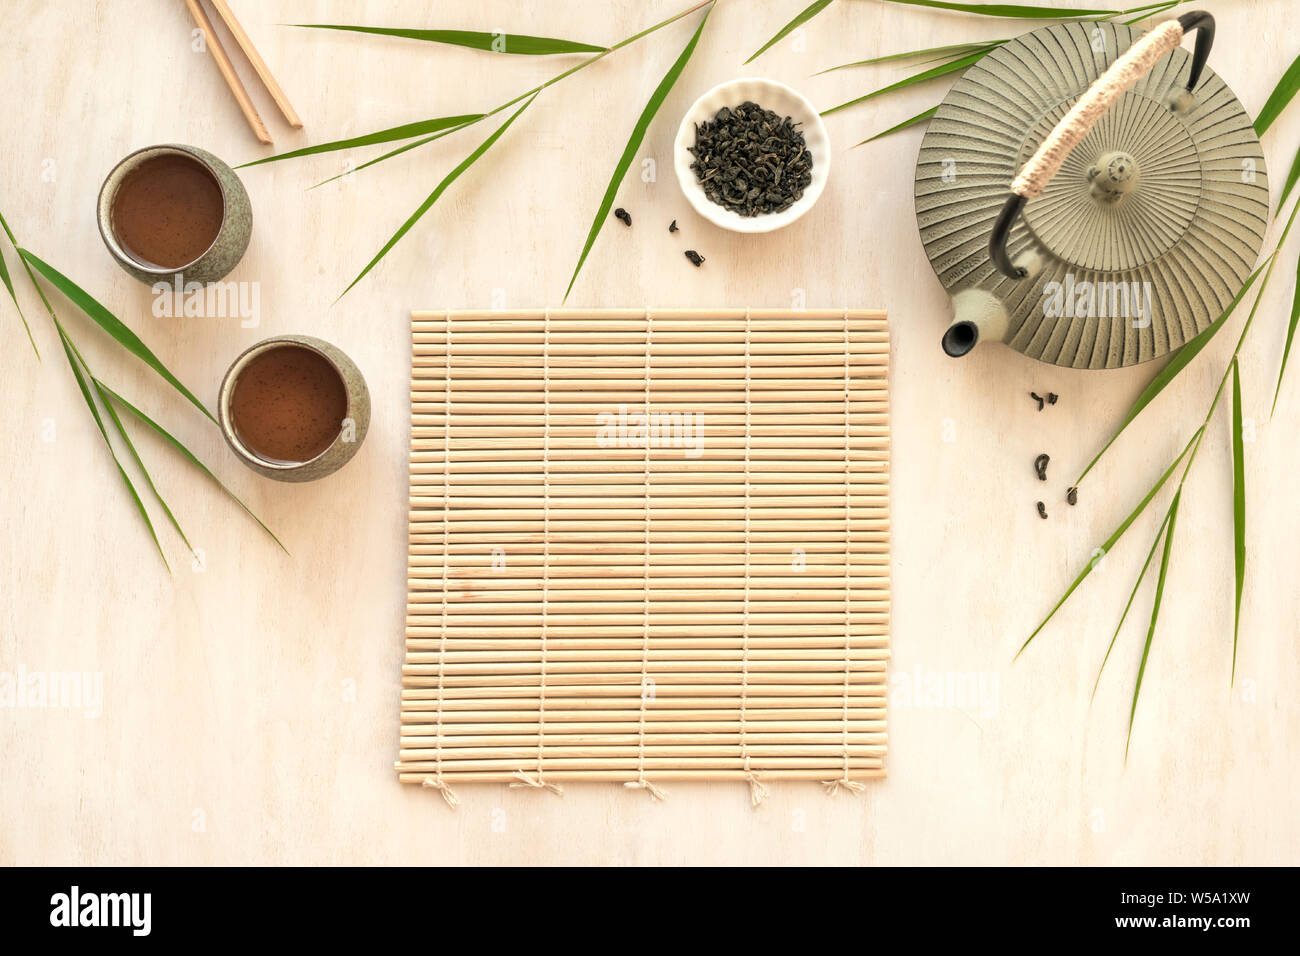 Rush Mat Stock Photos & Rush Mat Stock Images - Alamy